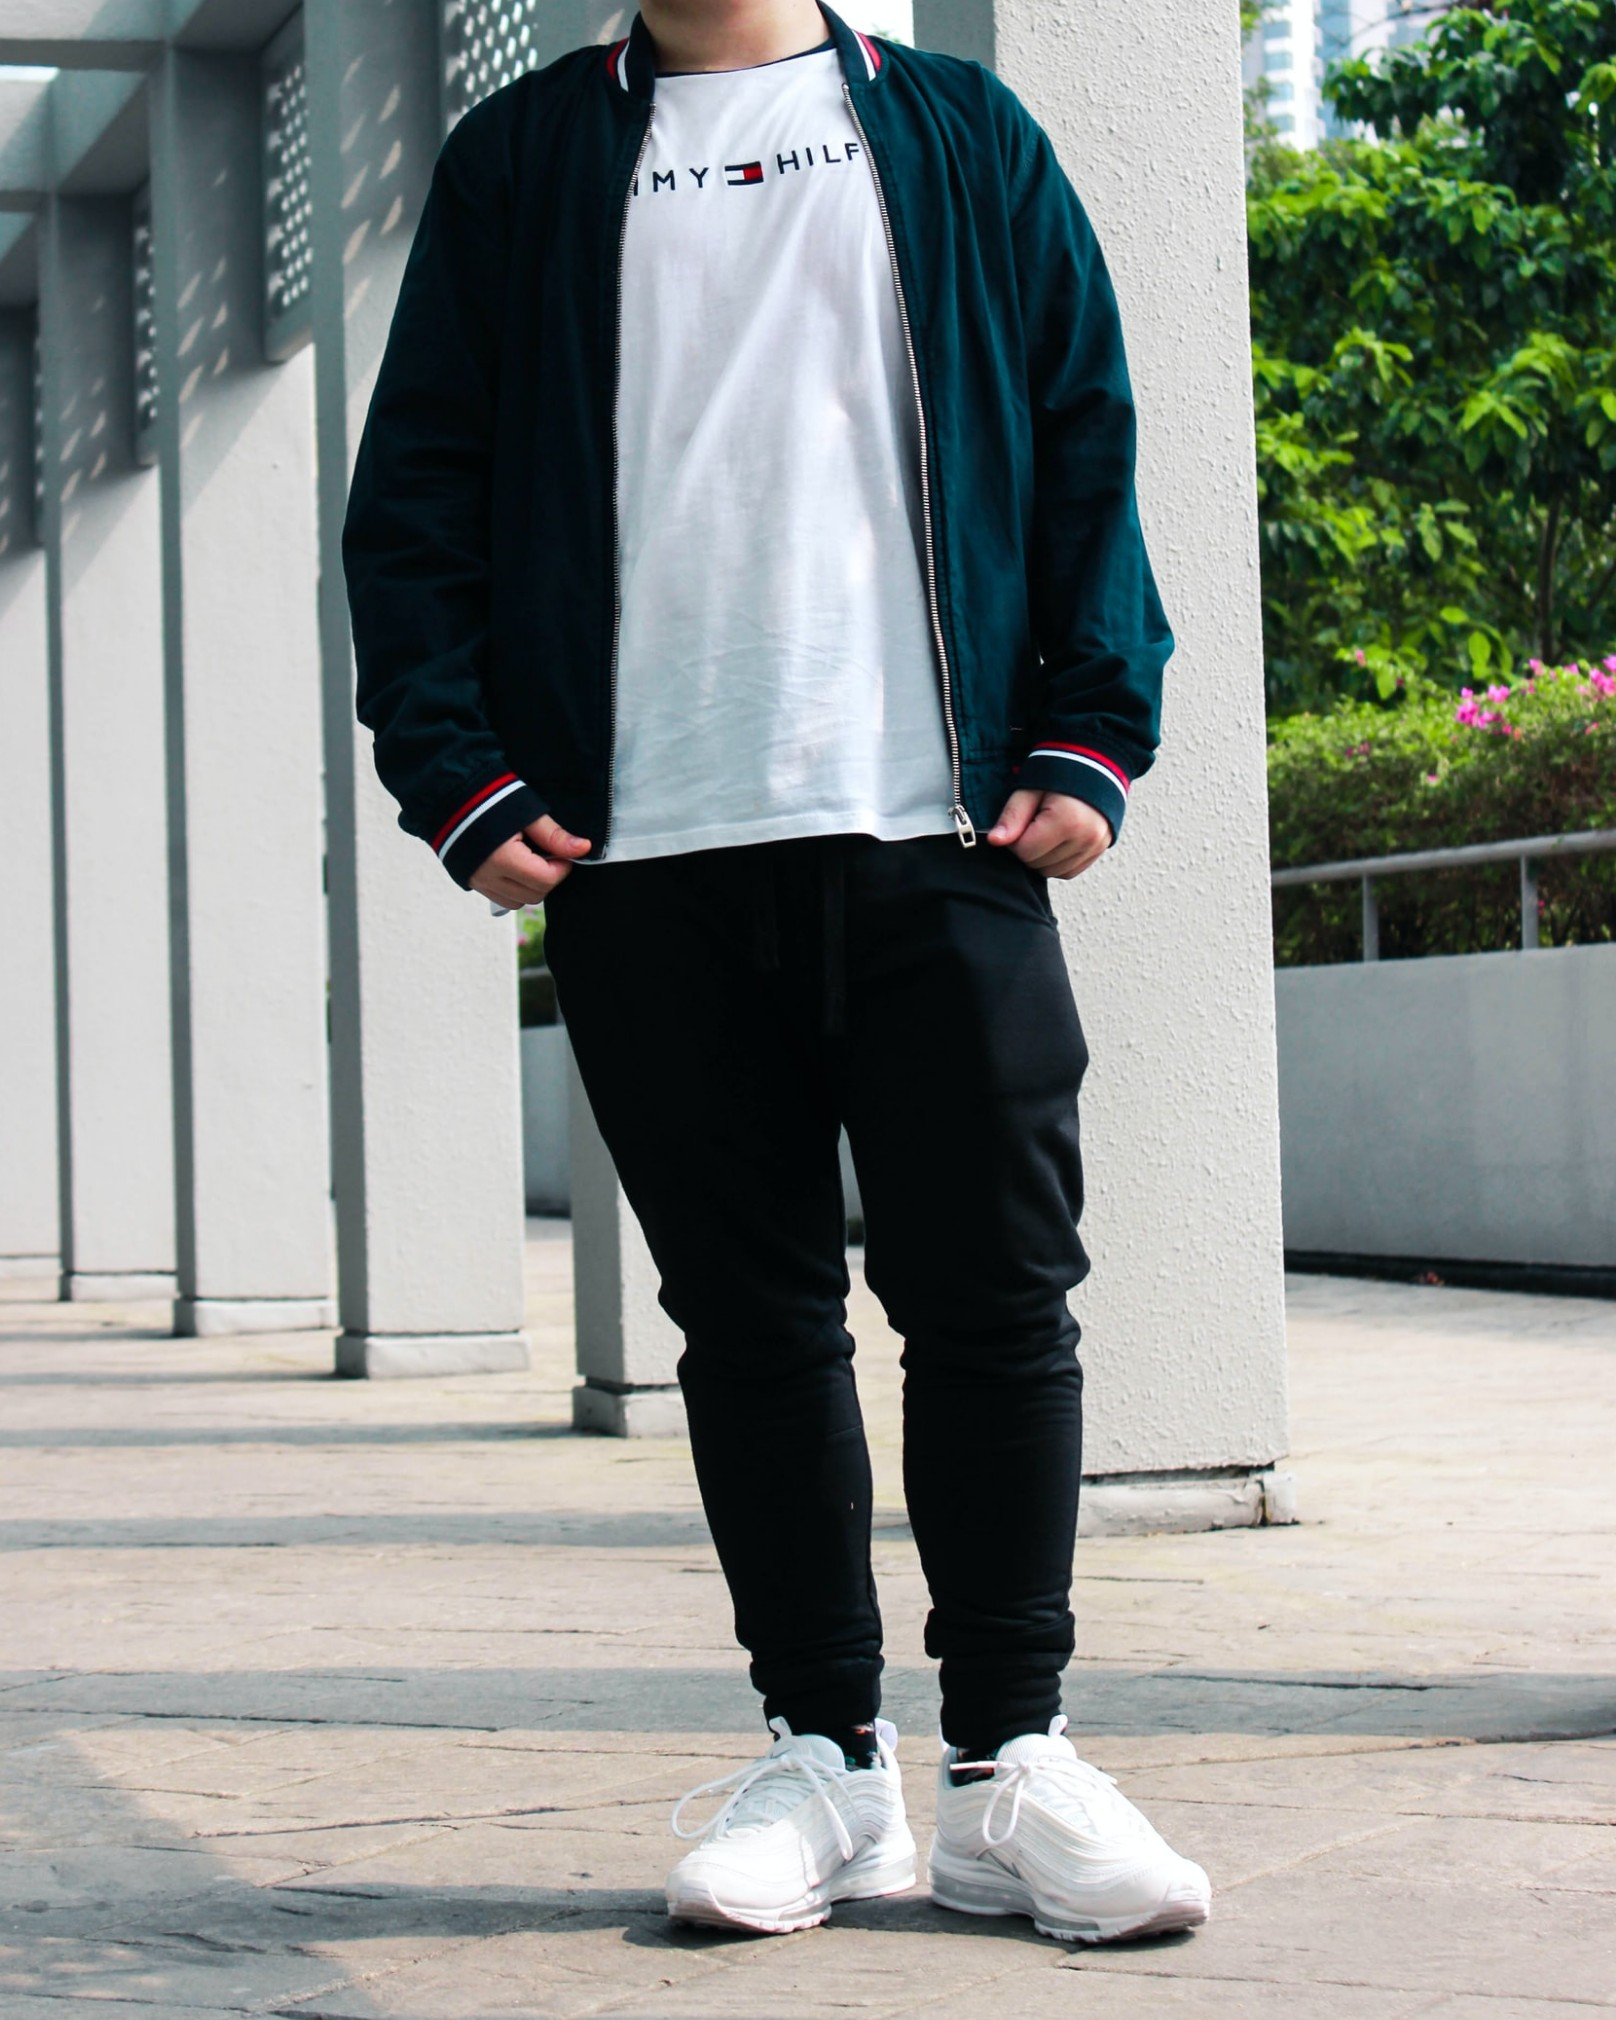 Man wearing, Bomber jacket over crew neck t-shirt and joggers.